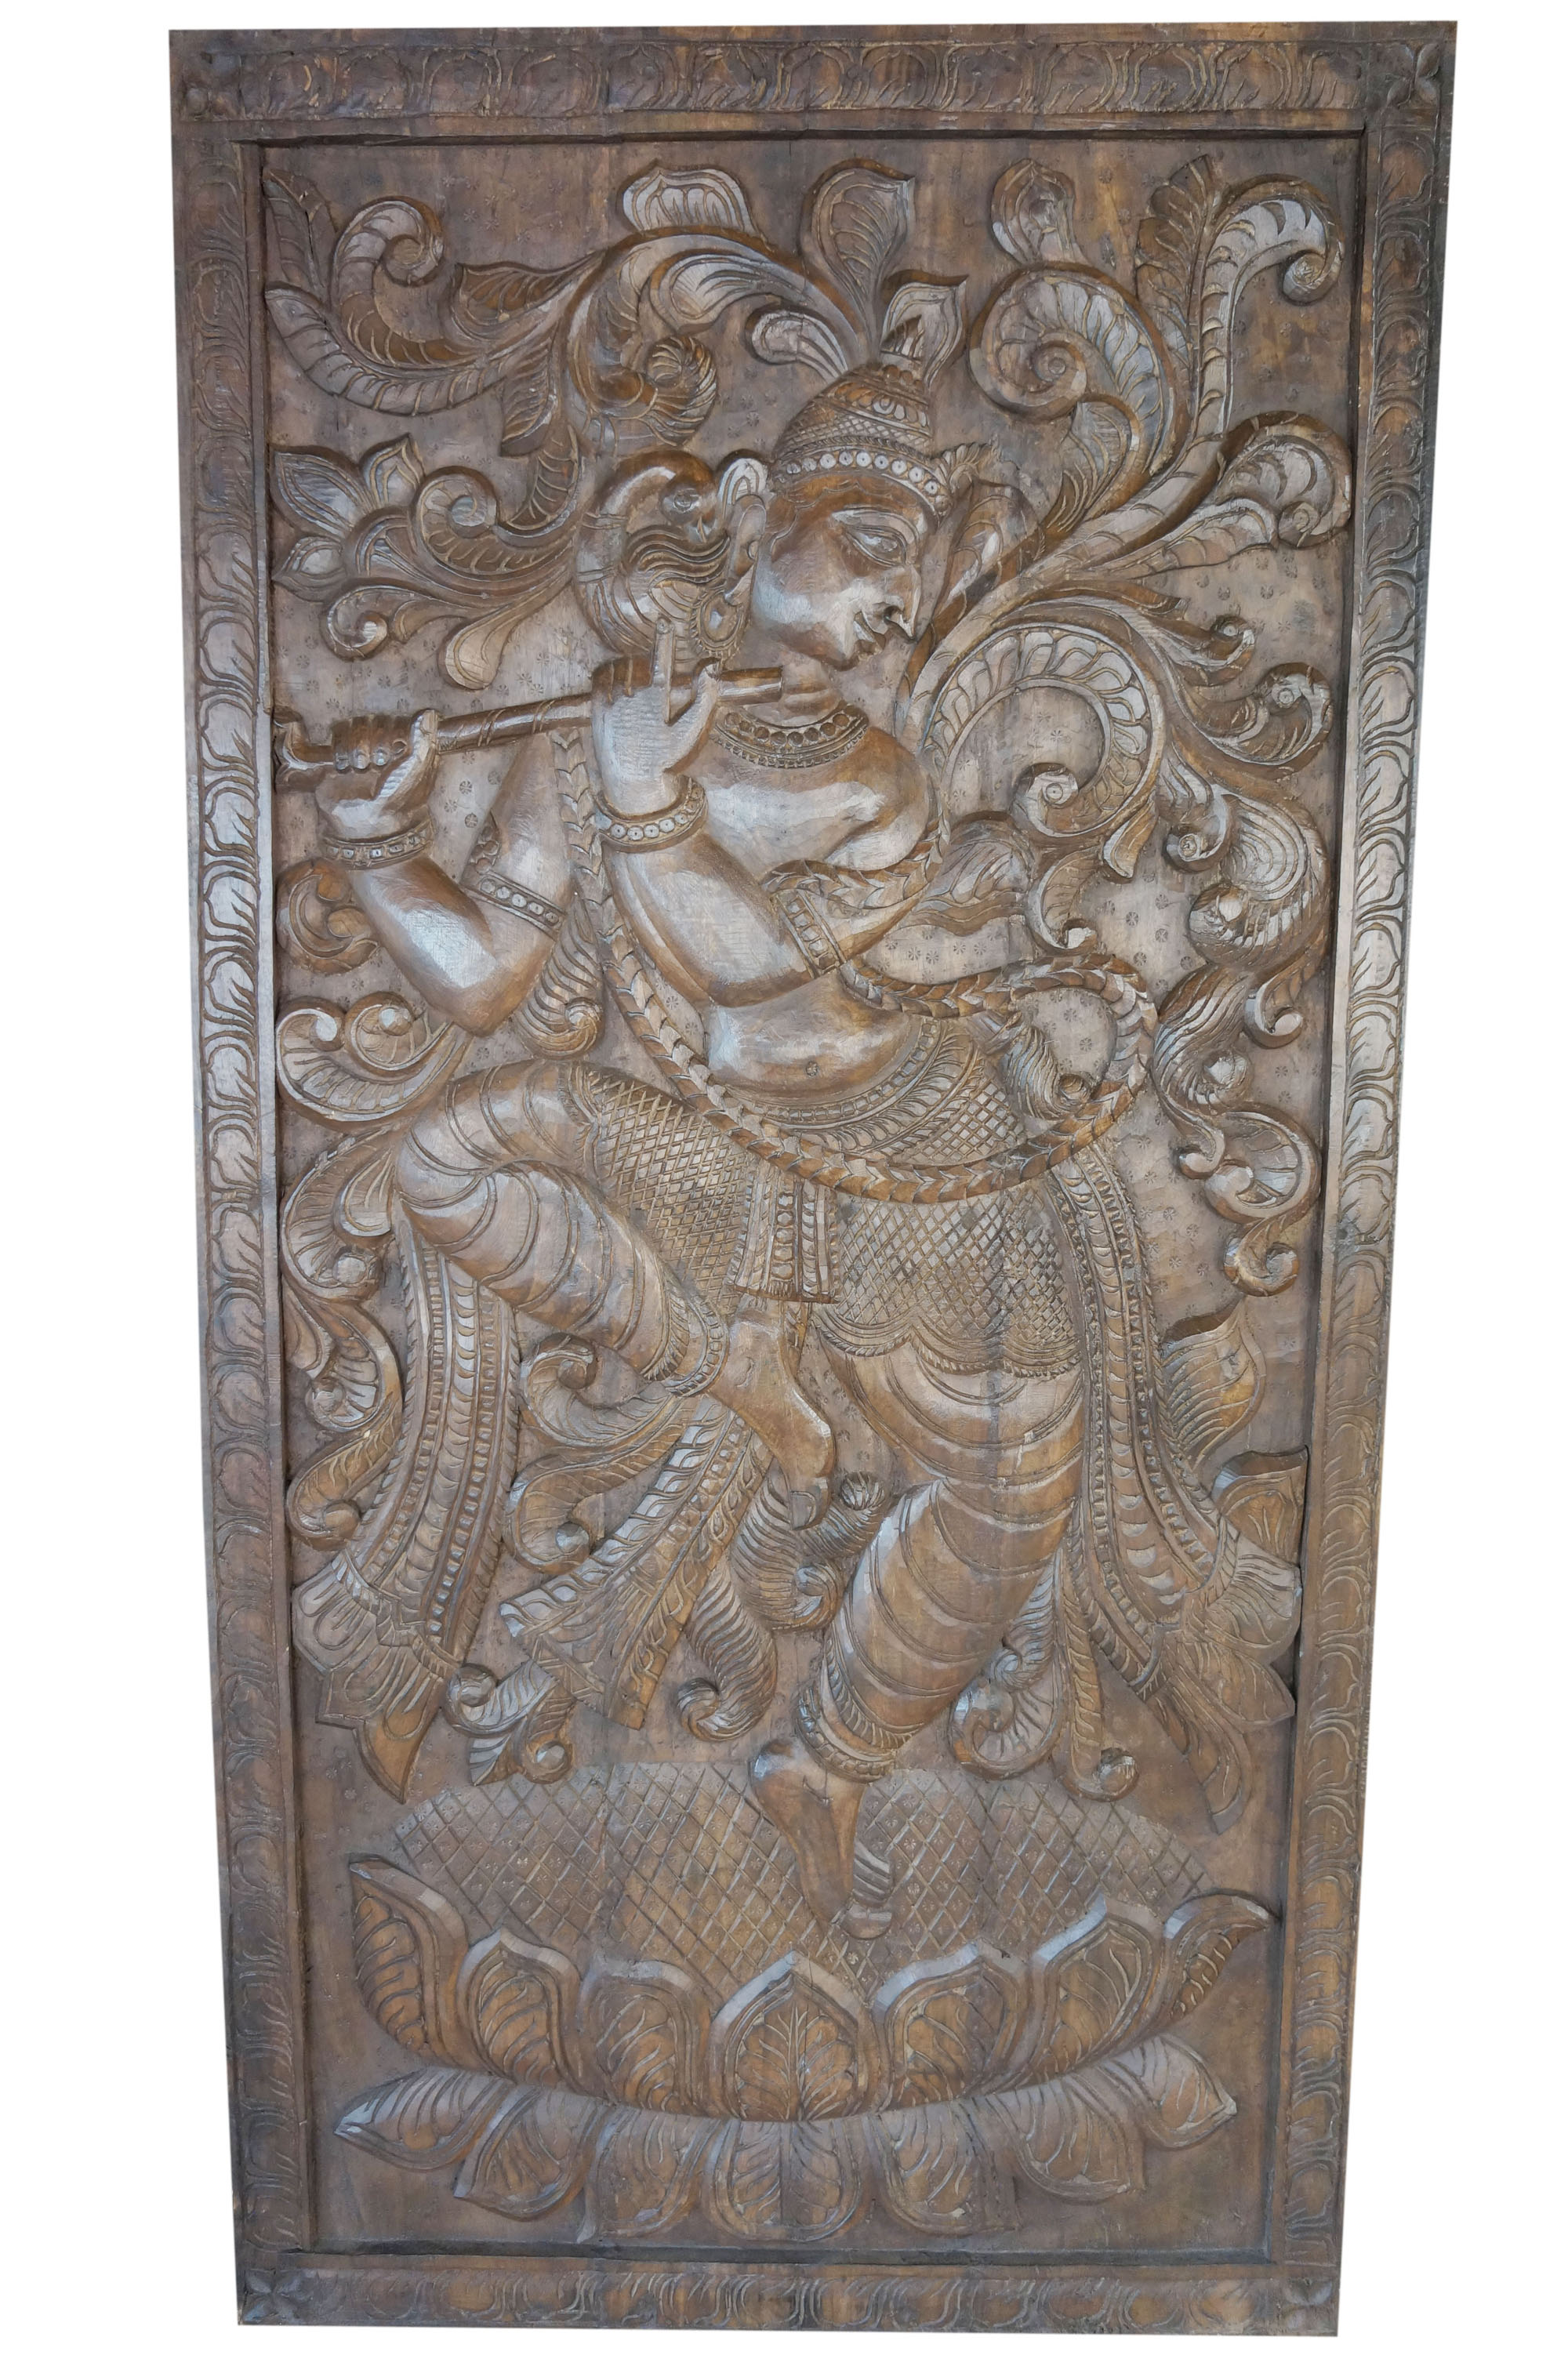 Mogul Dancing Krishna Handcarved Vintage Fluting Krishna Wall Sculpture Panel Barn Door Yoga Decor